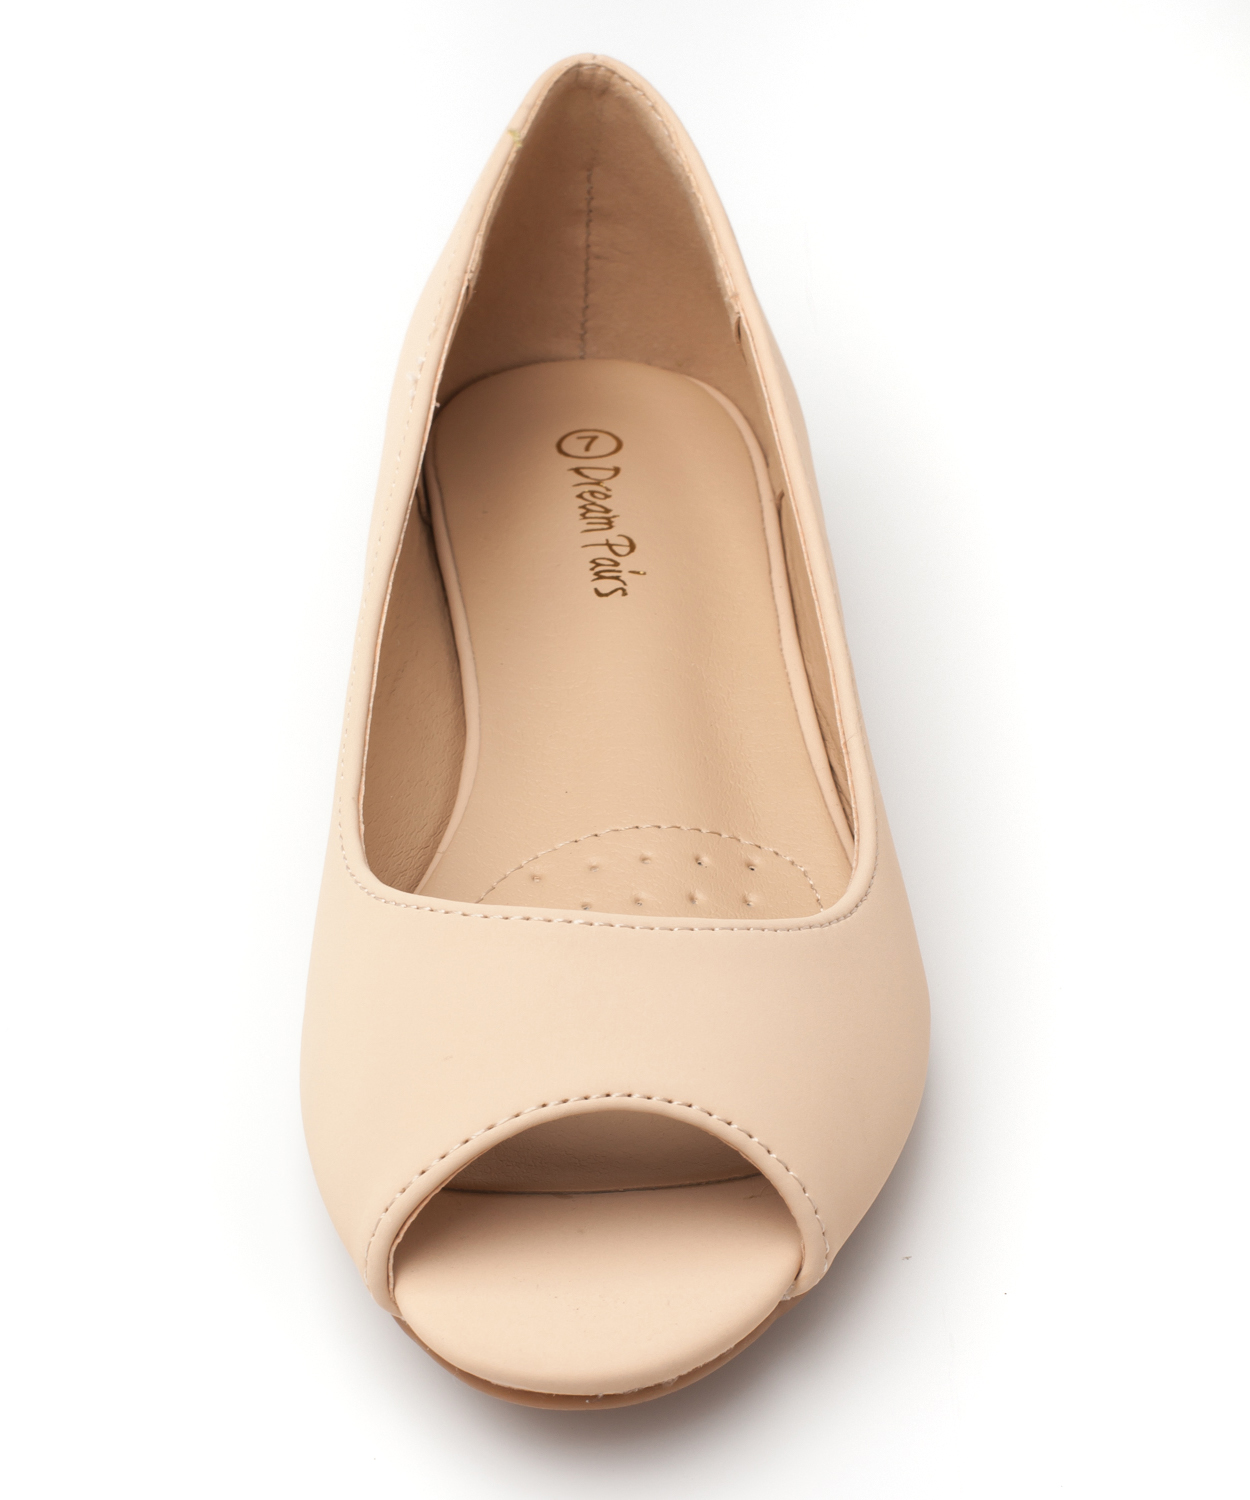 DREAM-PAIRS-Womens-Ballet-Flats-Low-Heel-Open-Toe-Slip-On-Dress-Flat-Shoes thumbnail 49